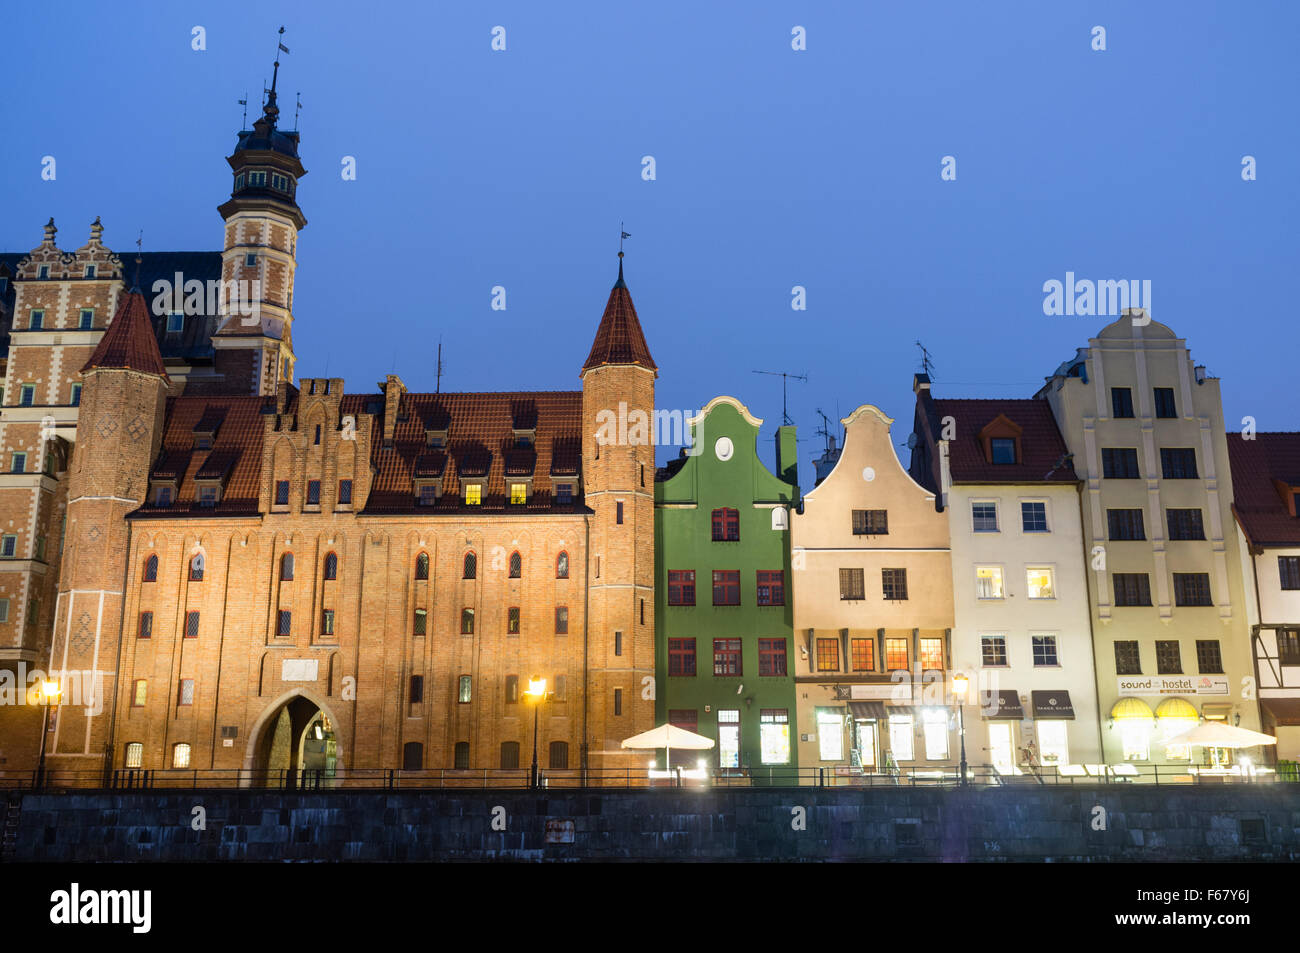 Waterfront tenement houses by night. Gdansk, Poland - Stock Image